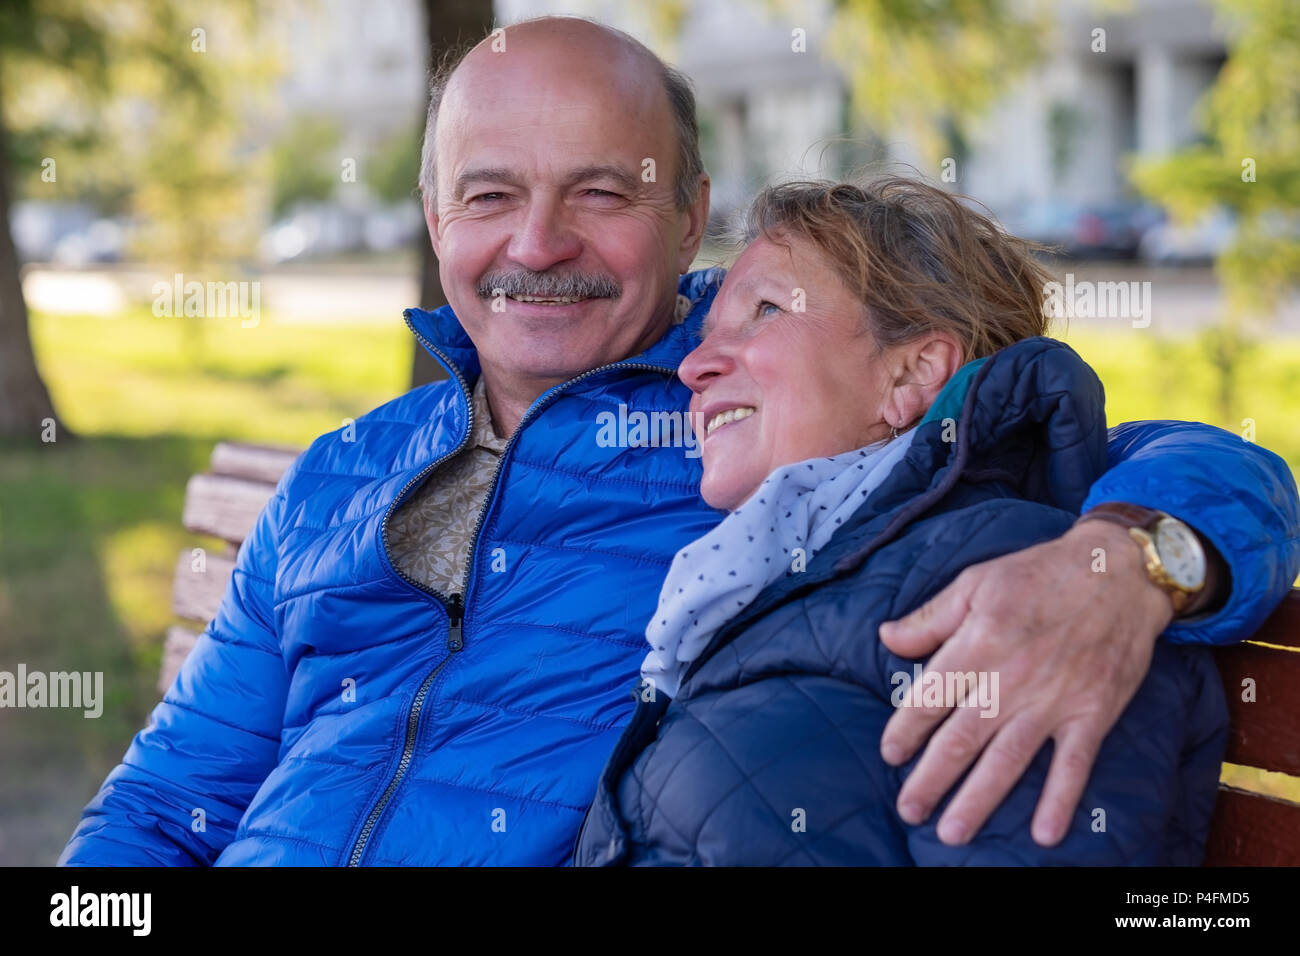 Mature european couple walking on street at good weather in spring. Lovers spanding time together. - Stock Image